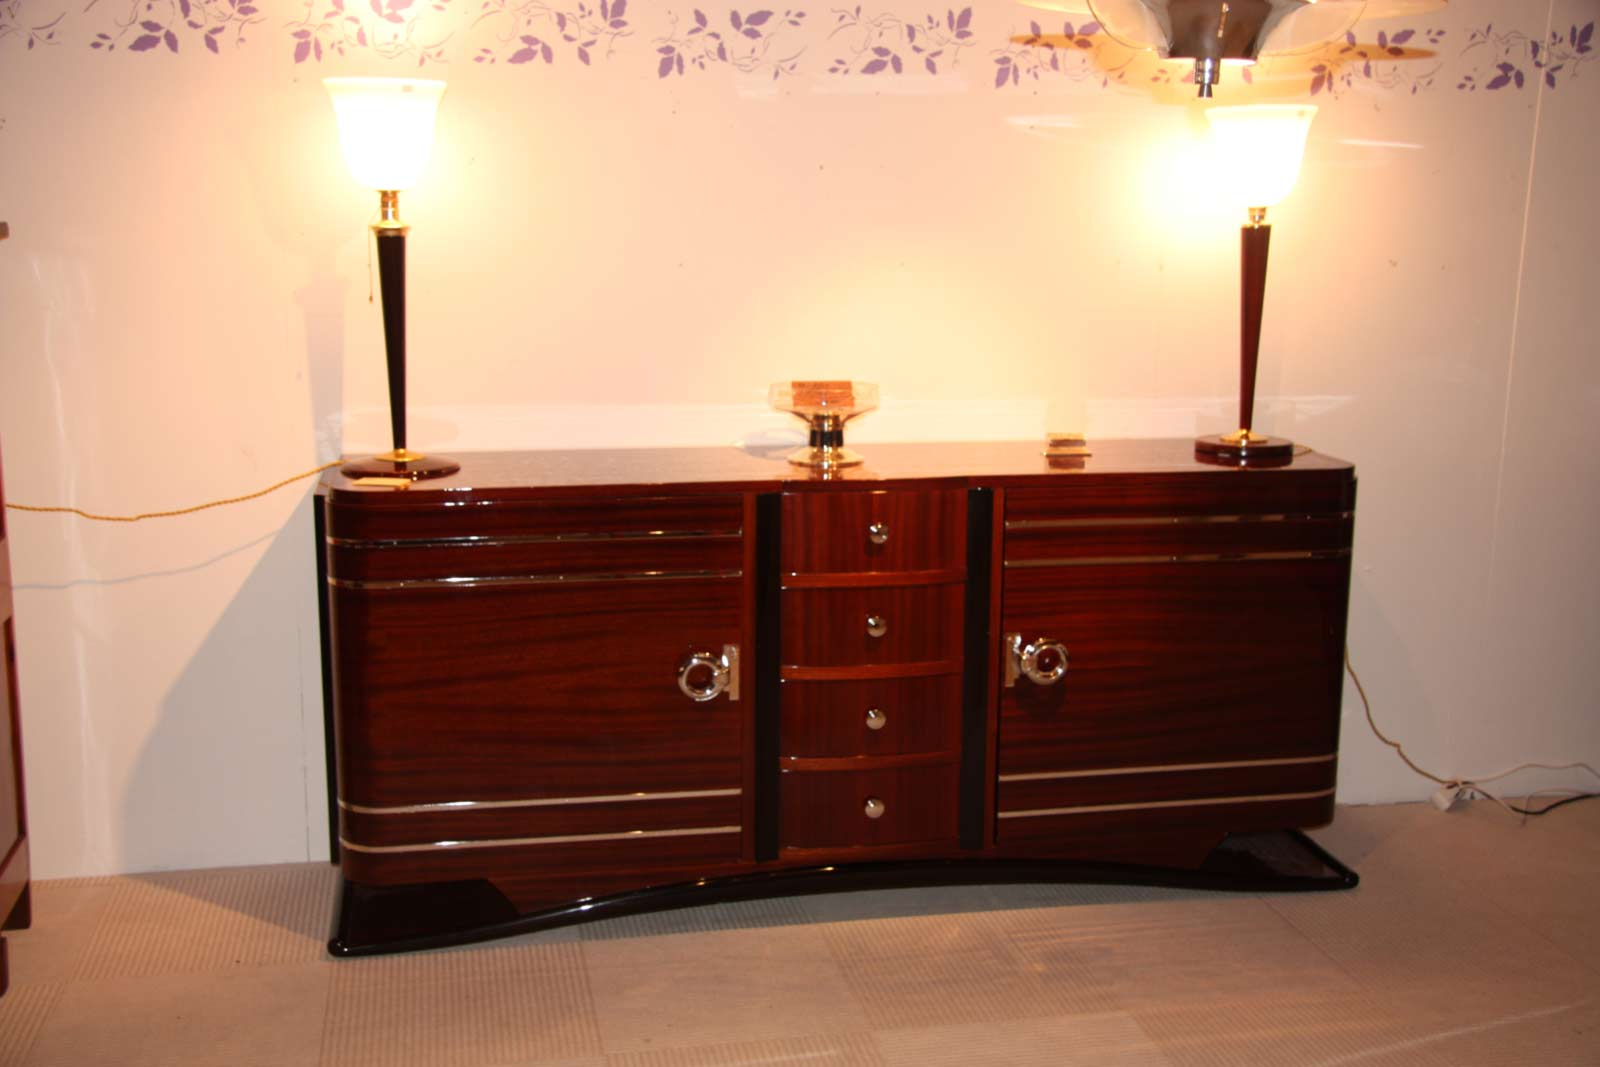 enfilade sideboard en acajou art d co ref enf 11 esprit art d co vente meubles art d co 1930. Black Bedroom Furniture Sets. Home Design Ideas